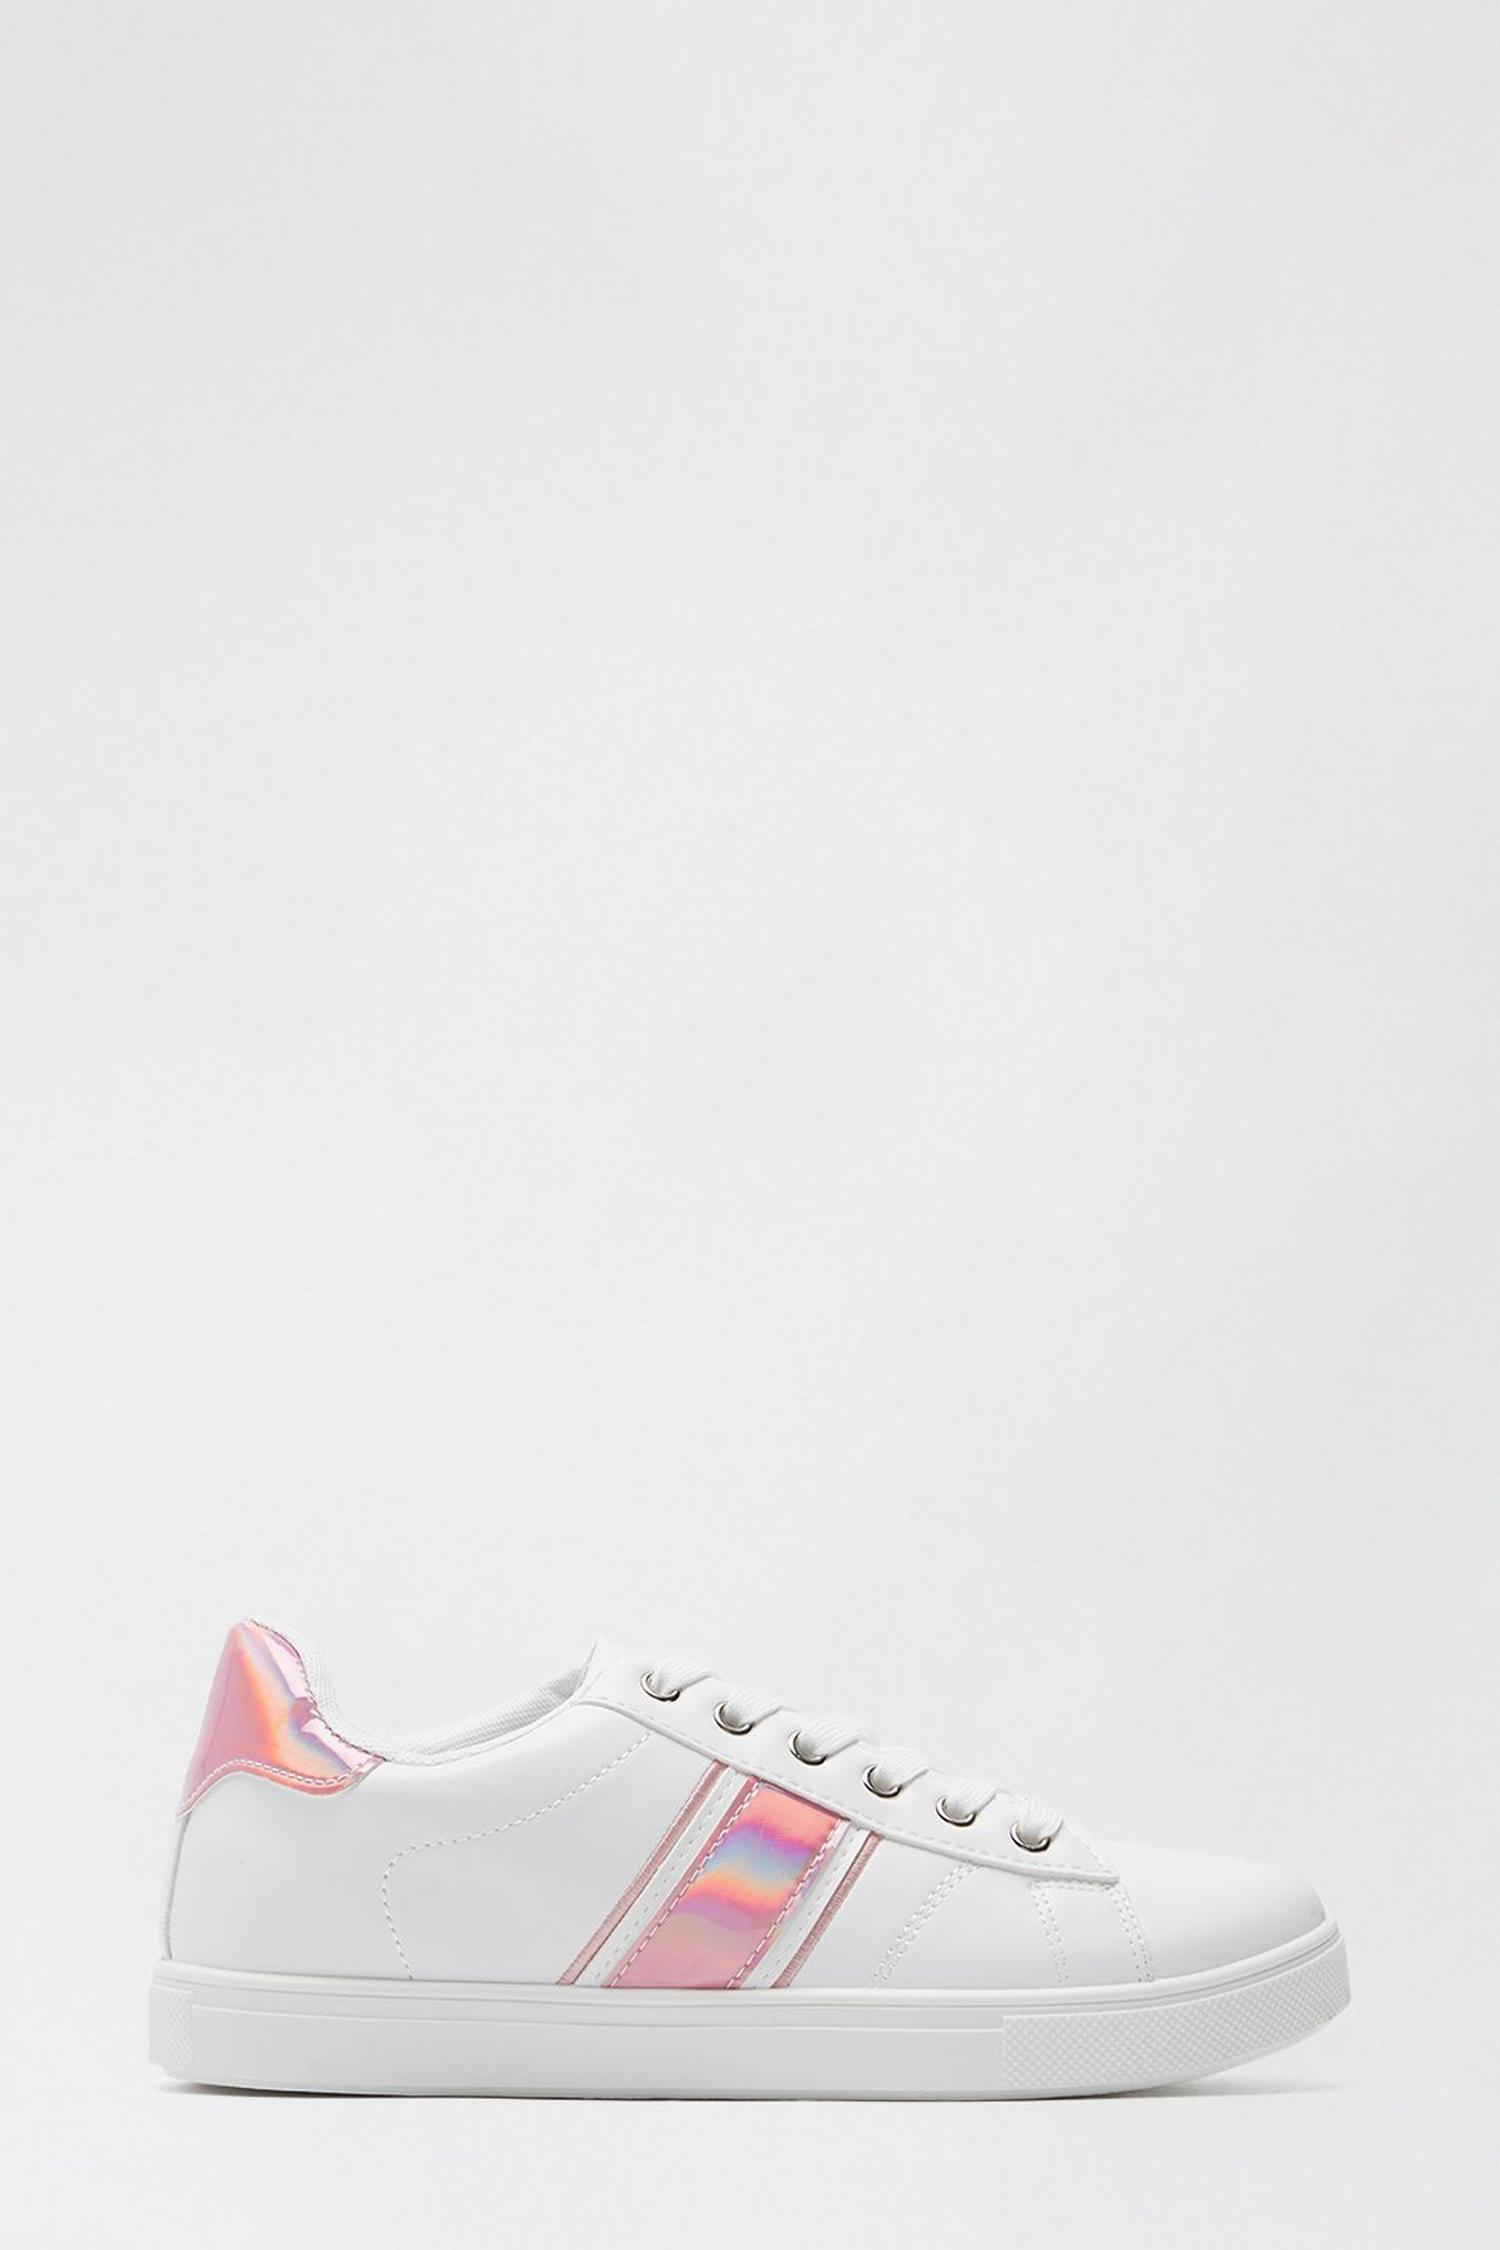 155 Pink 'Isle' Side Stripe Trainer image number 1